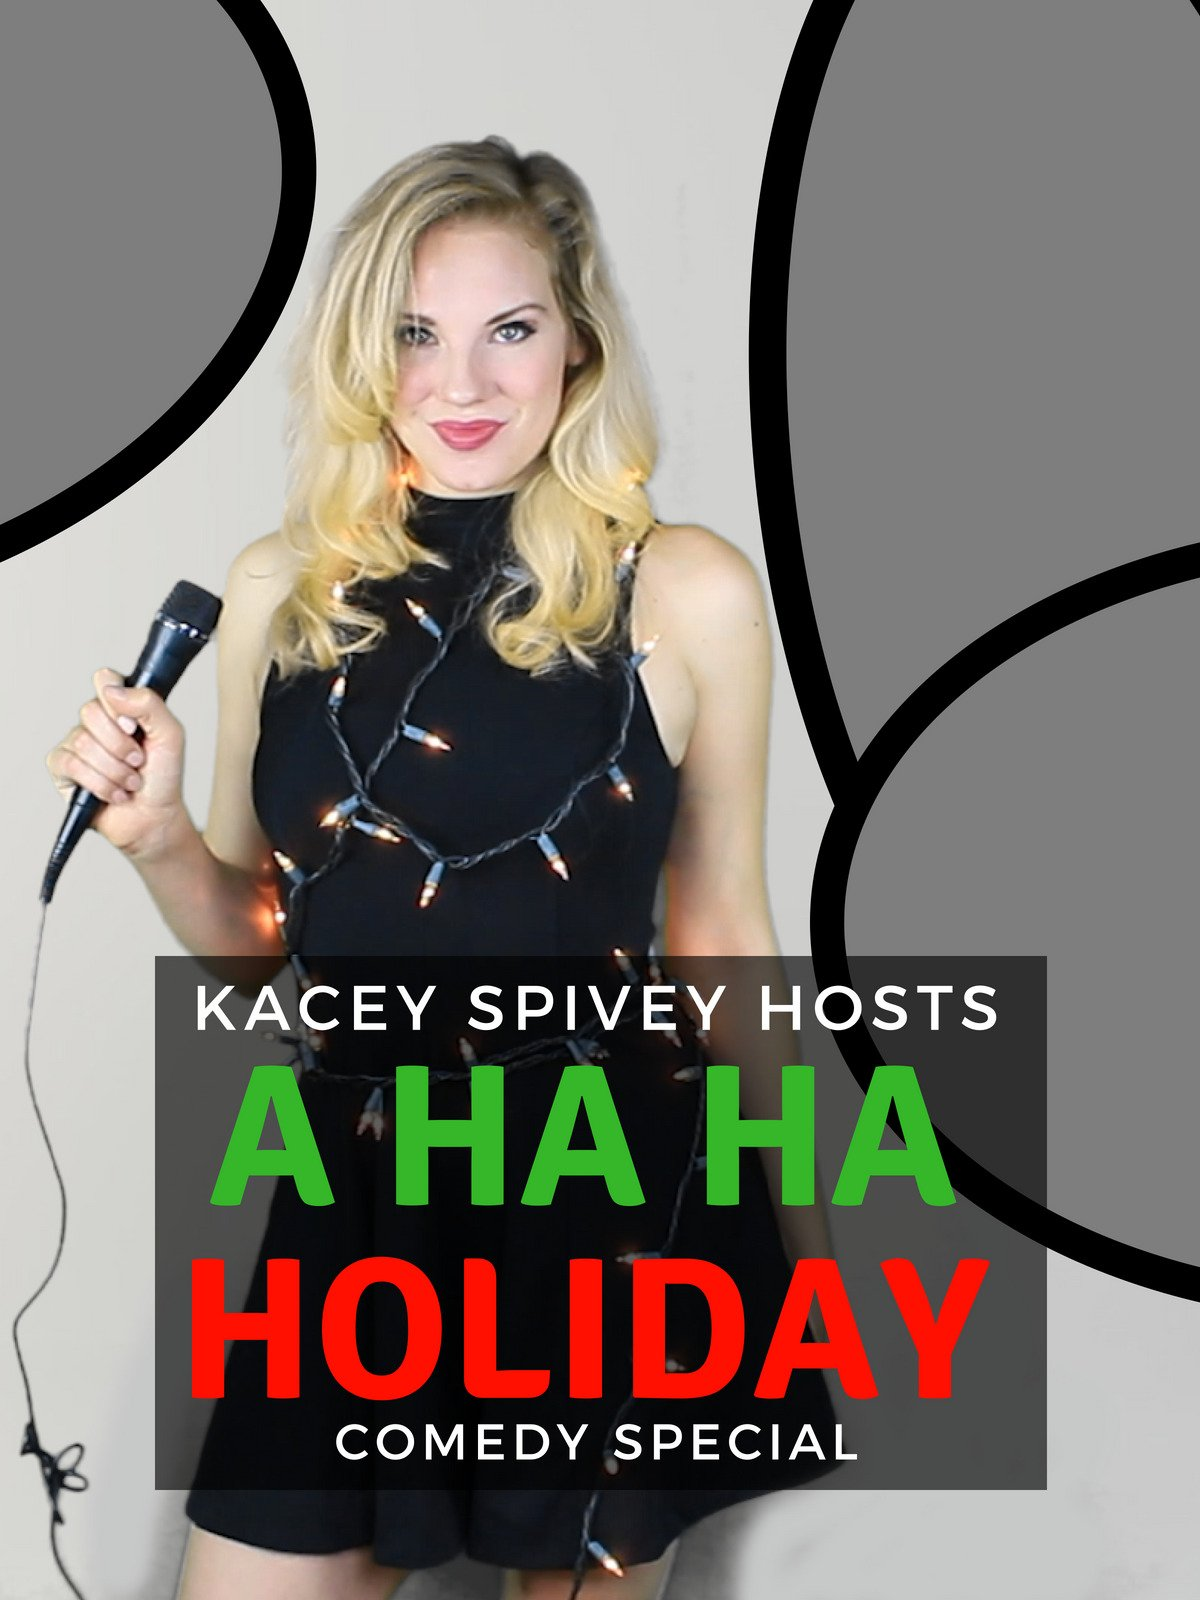 Kacey Spivey Hosts A Ha Ha Holiday Comedy Special